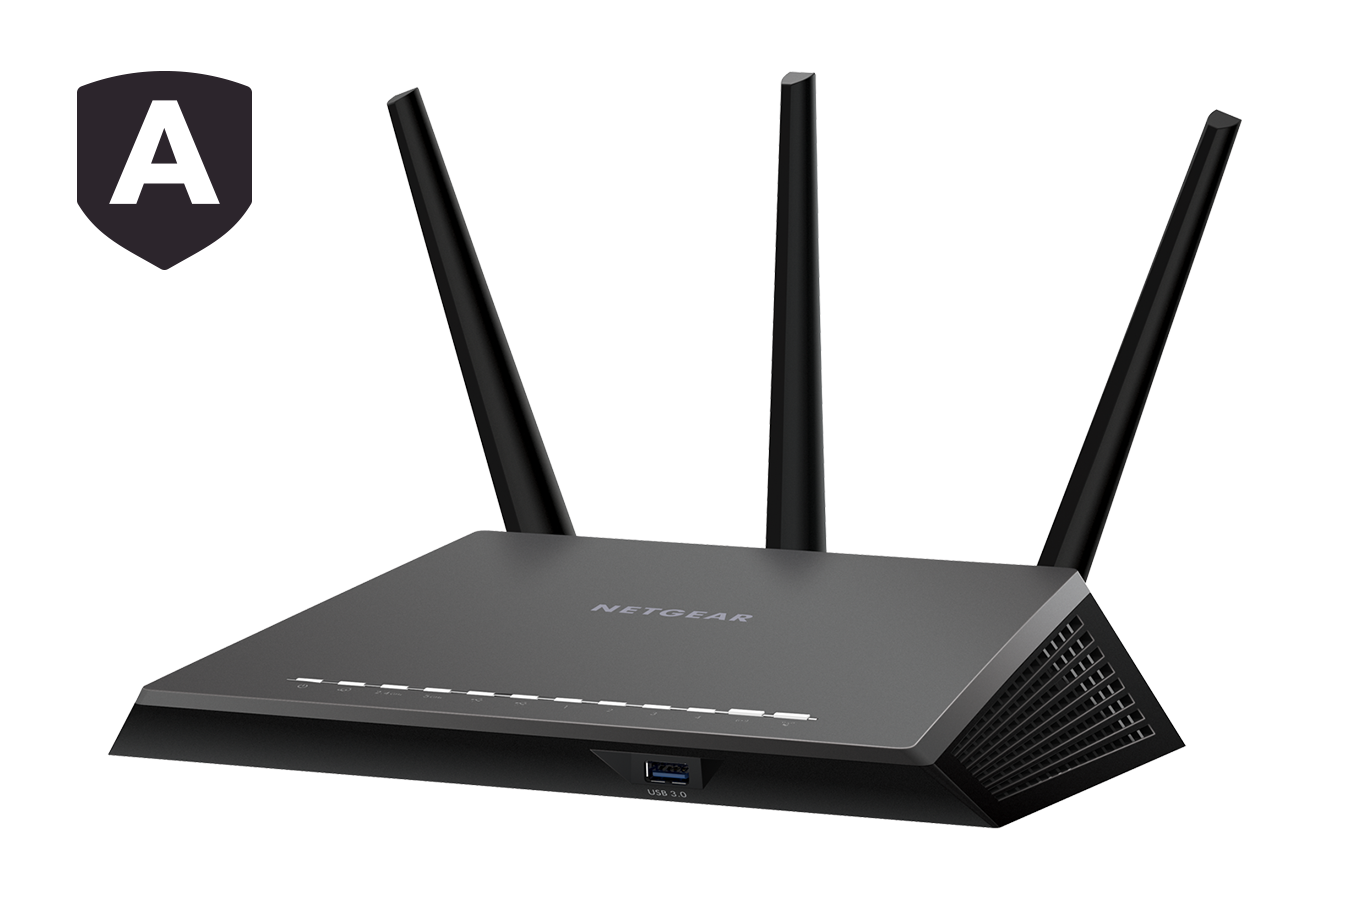 Netgear Router R7000 Configured For Mongotel